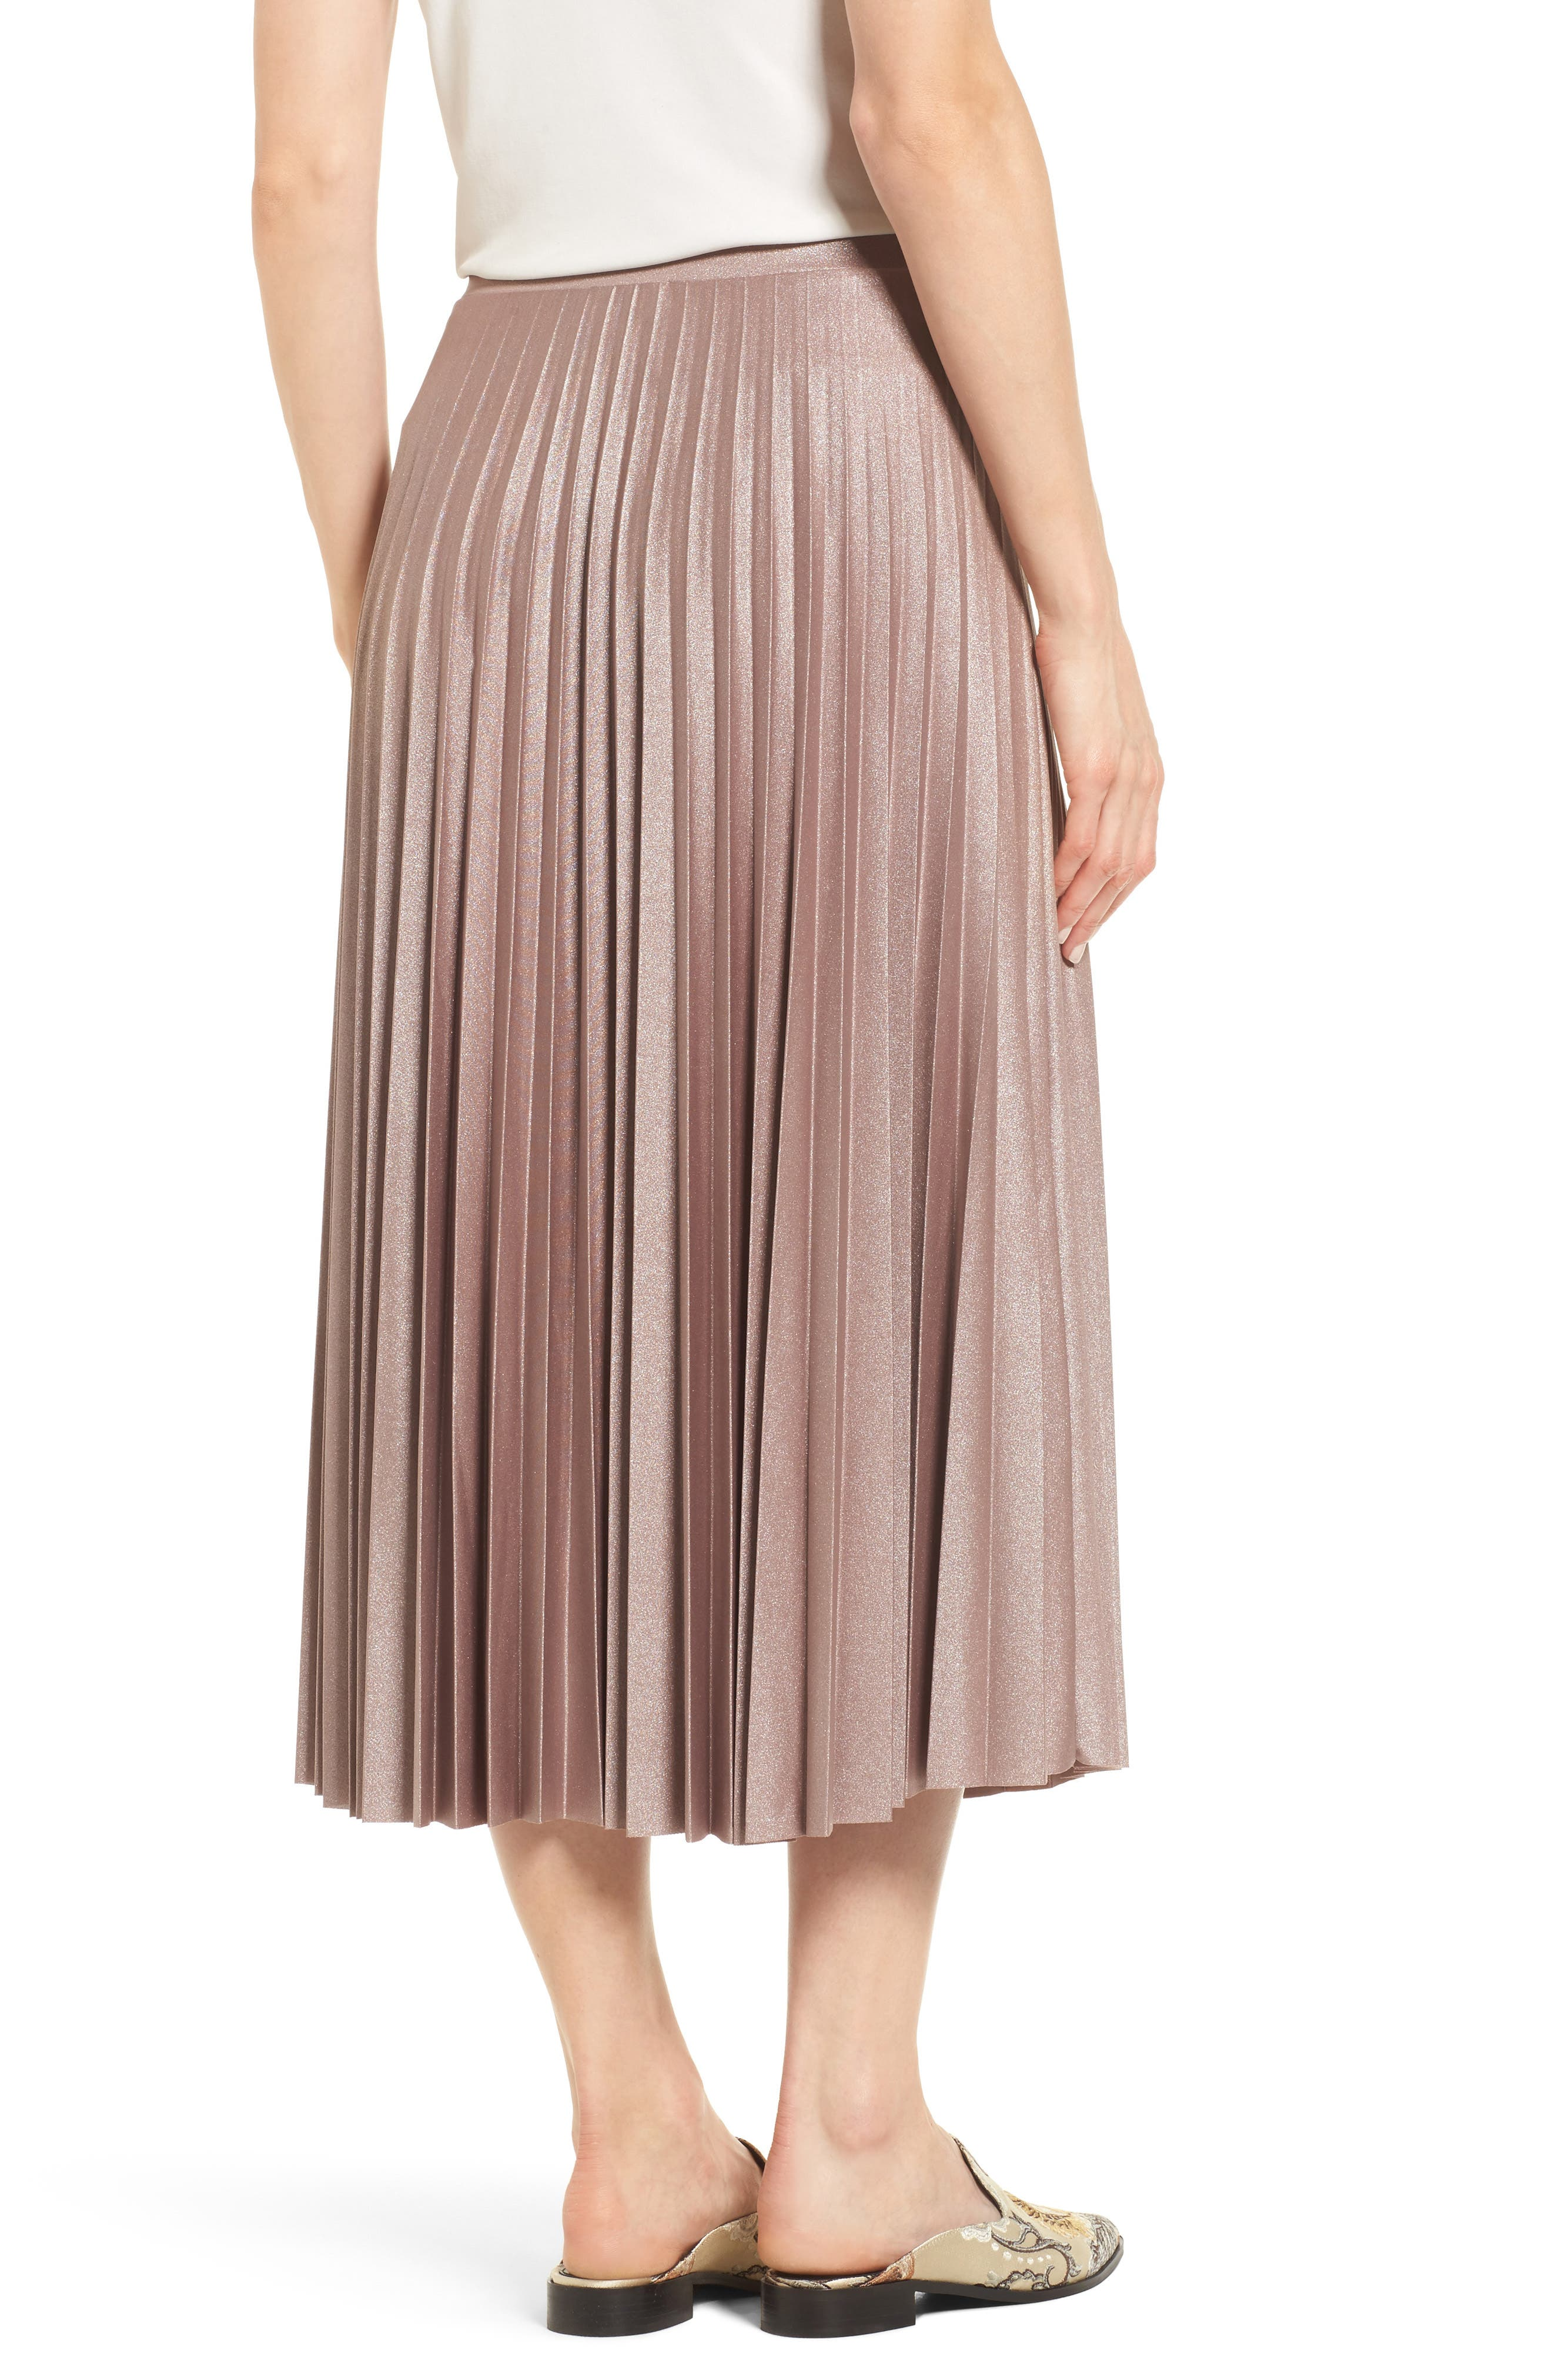 Skirts: A-Line, Pencil, Maxi, Miniskirts & More   Nordstrom ...